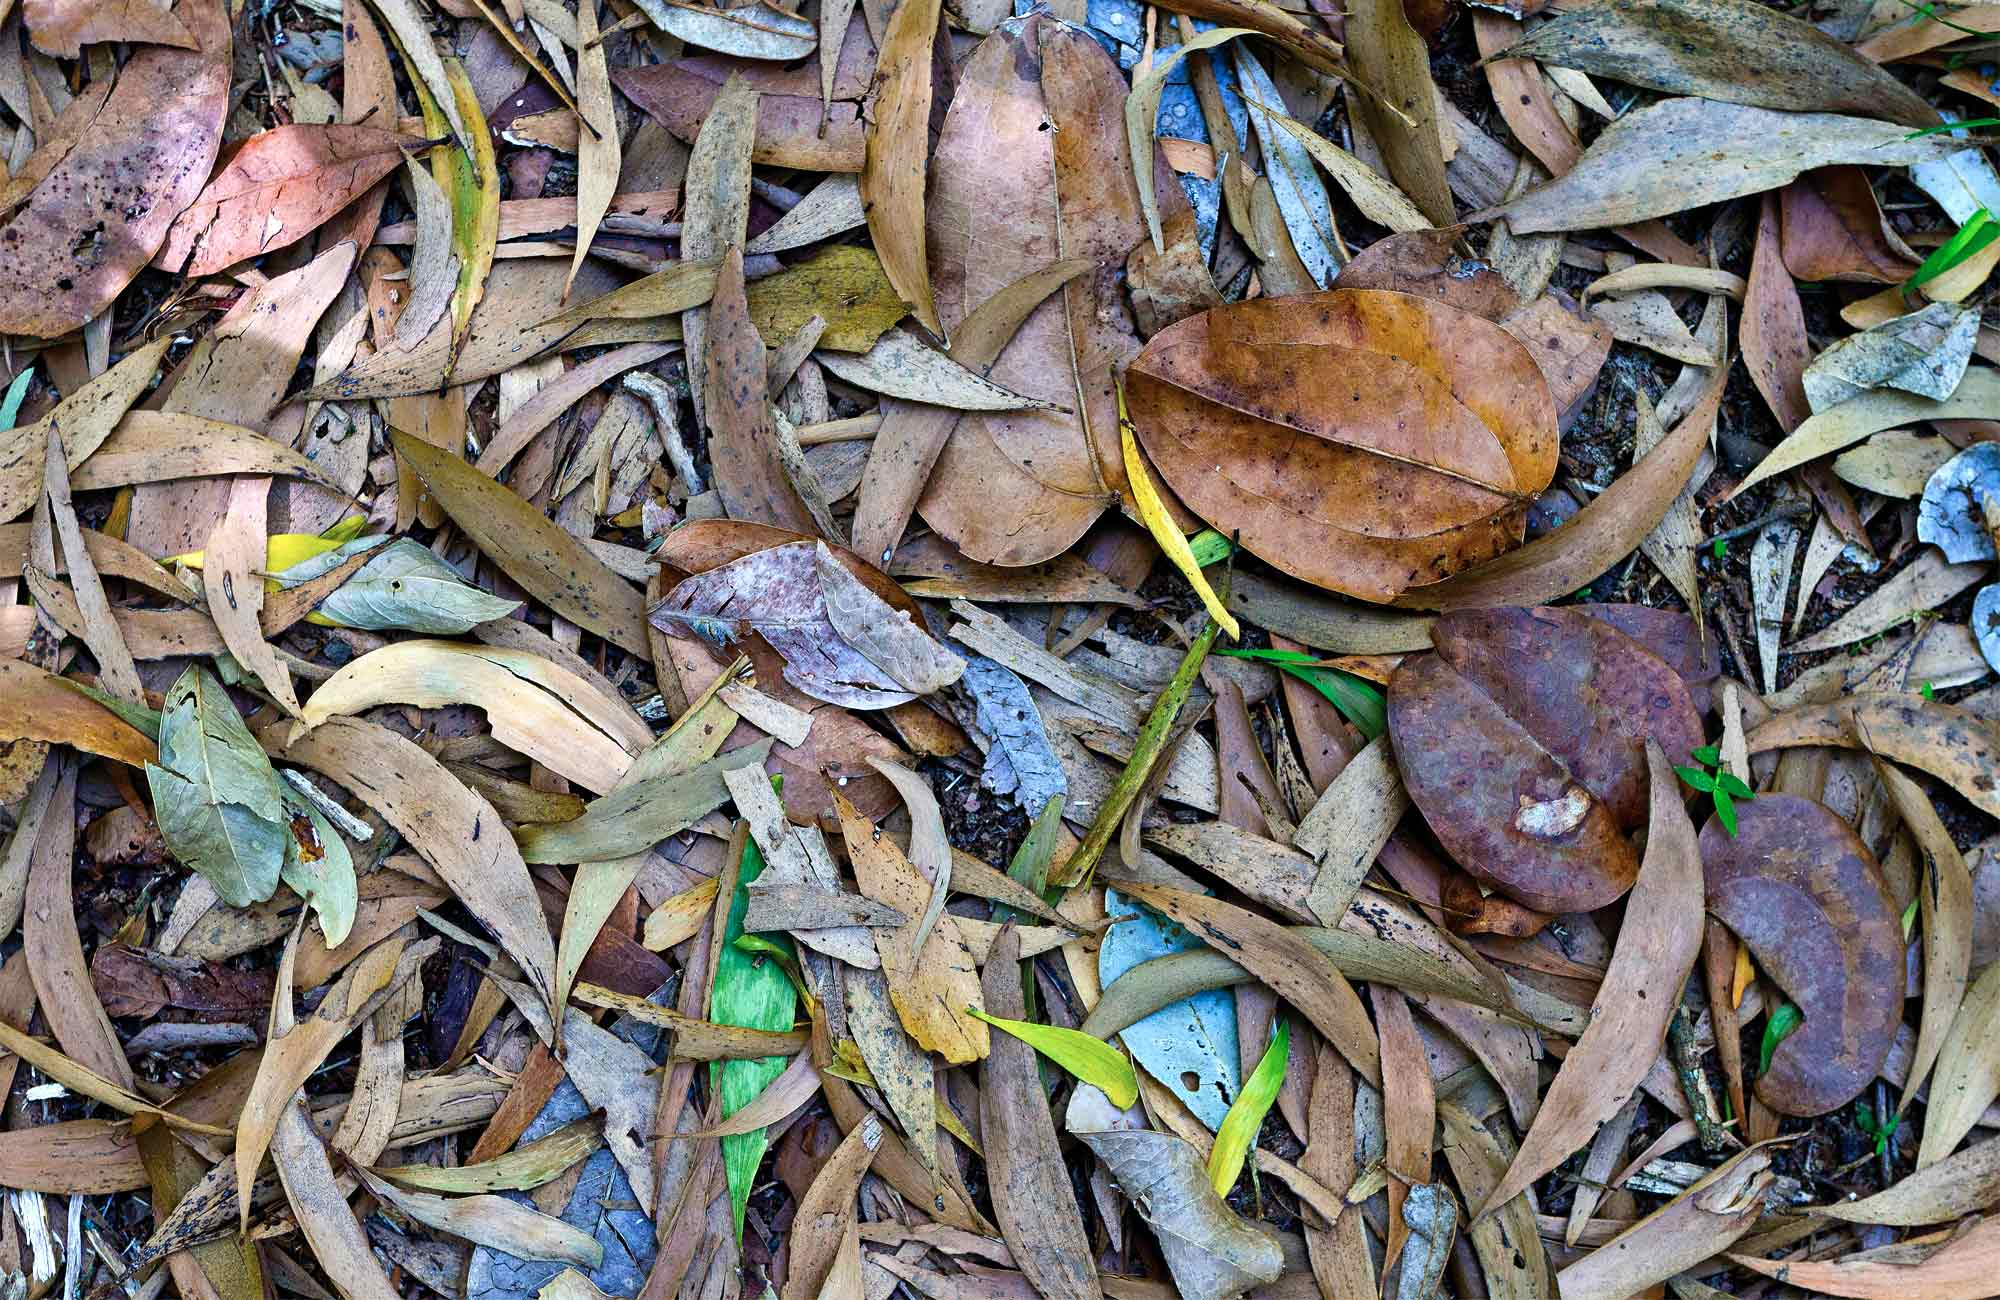 Leaves on the ground. Photo: Rob Cleary